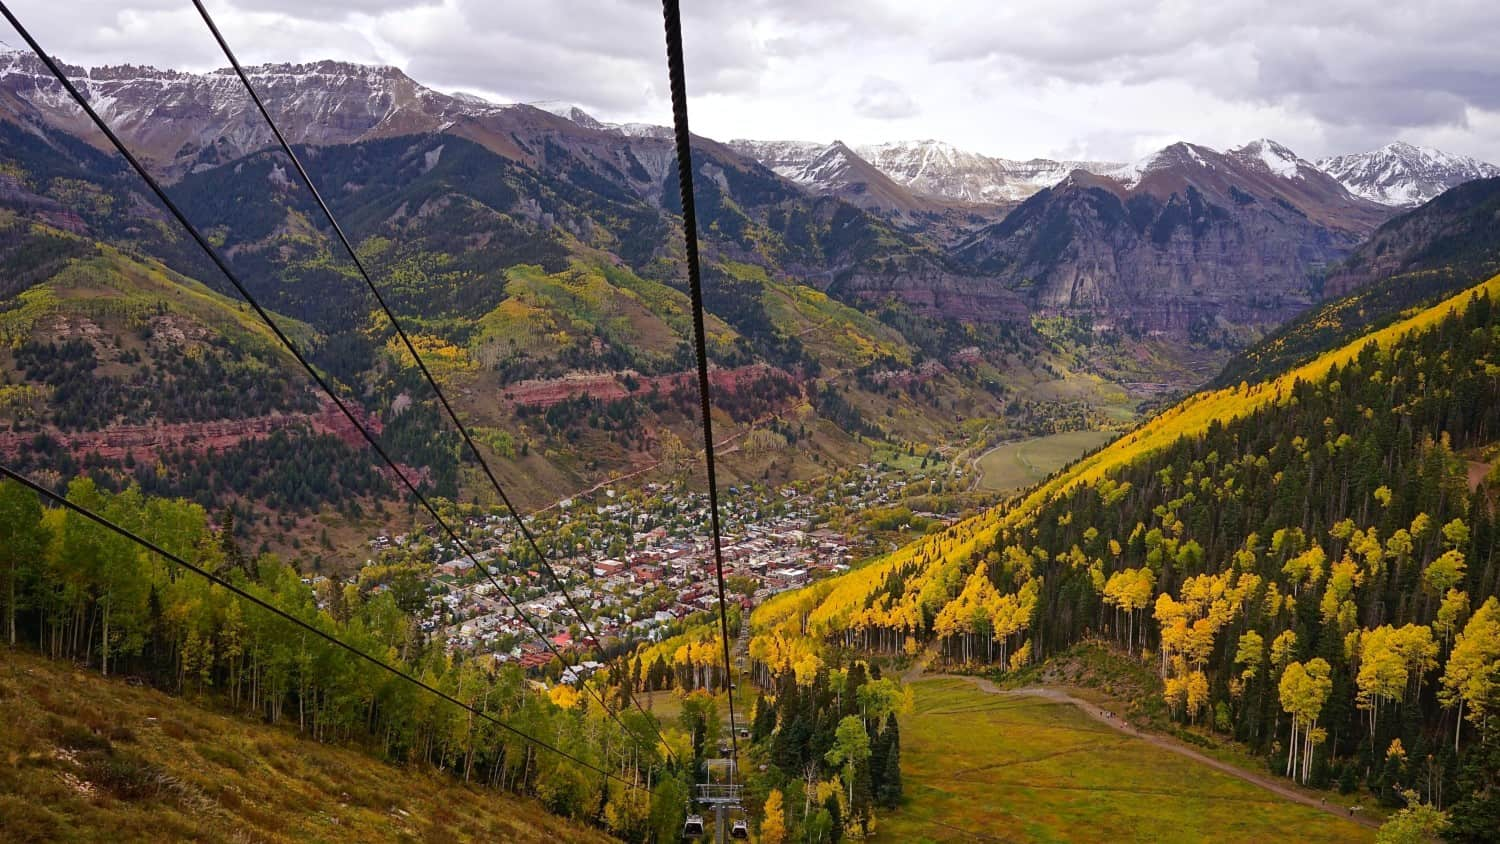 Colorado's Top Pet Friendly Attraction: Telluride Gondola | GoPetFriendly.com